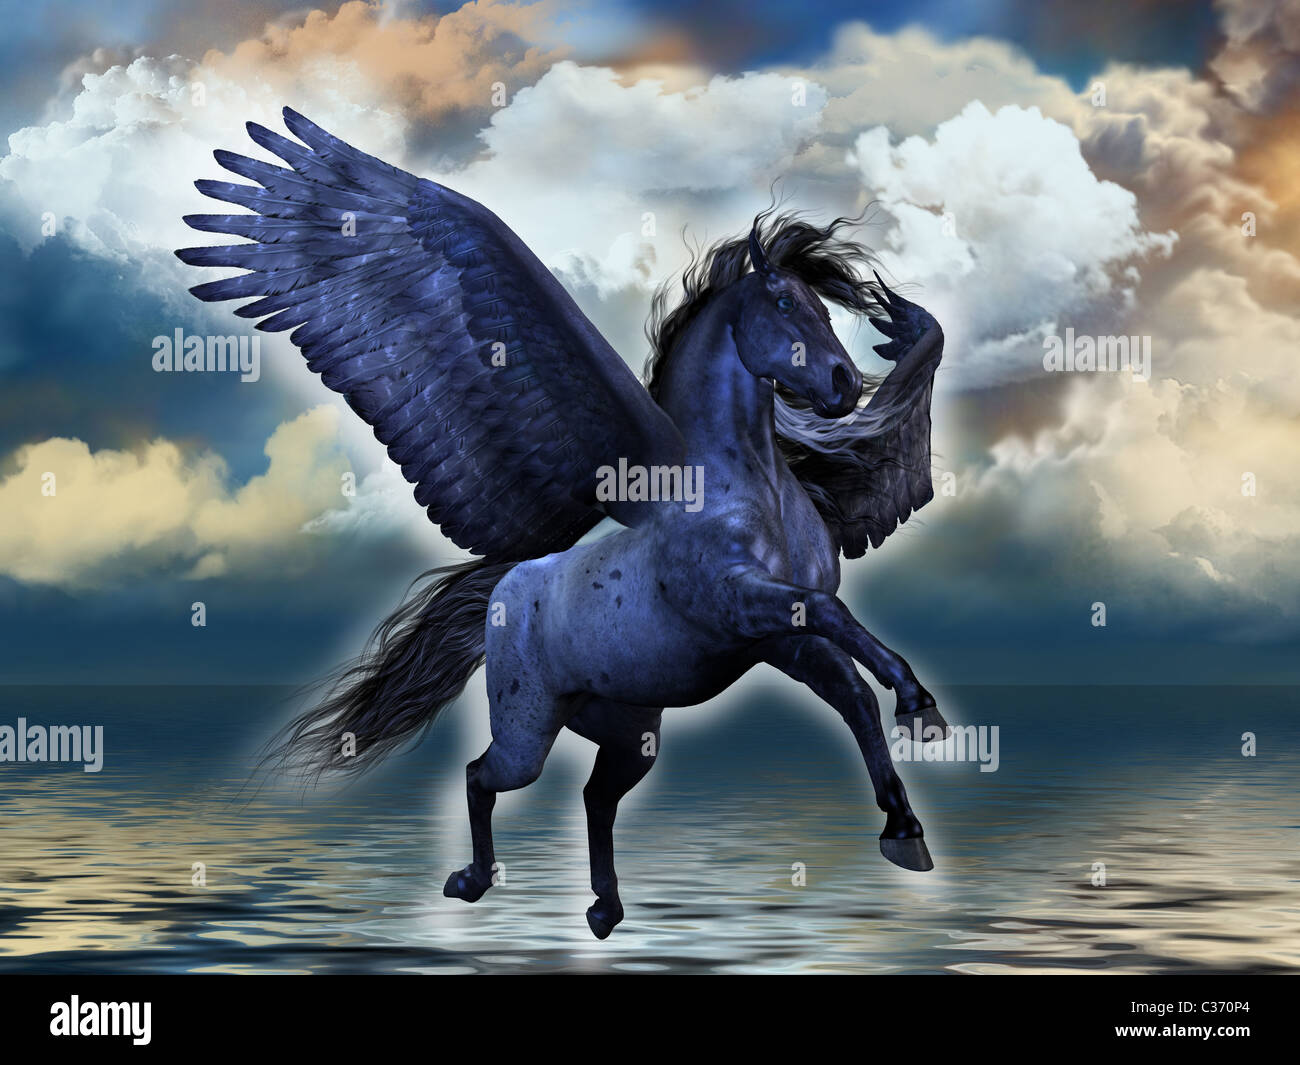 A black roan Pegasus stallion glows with magical powers. - Stock Image